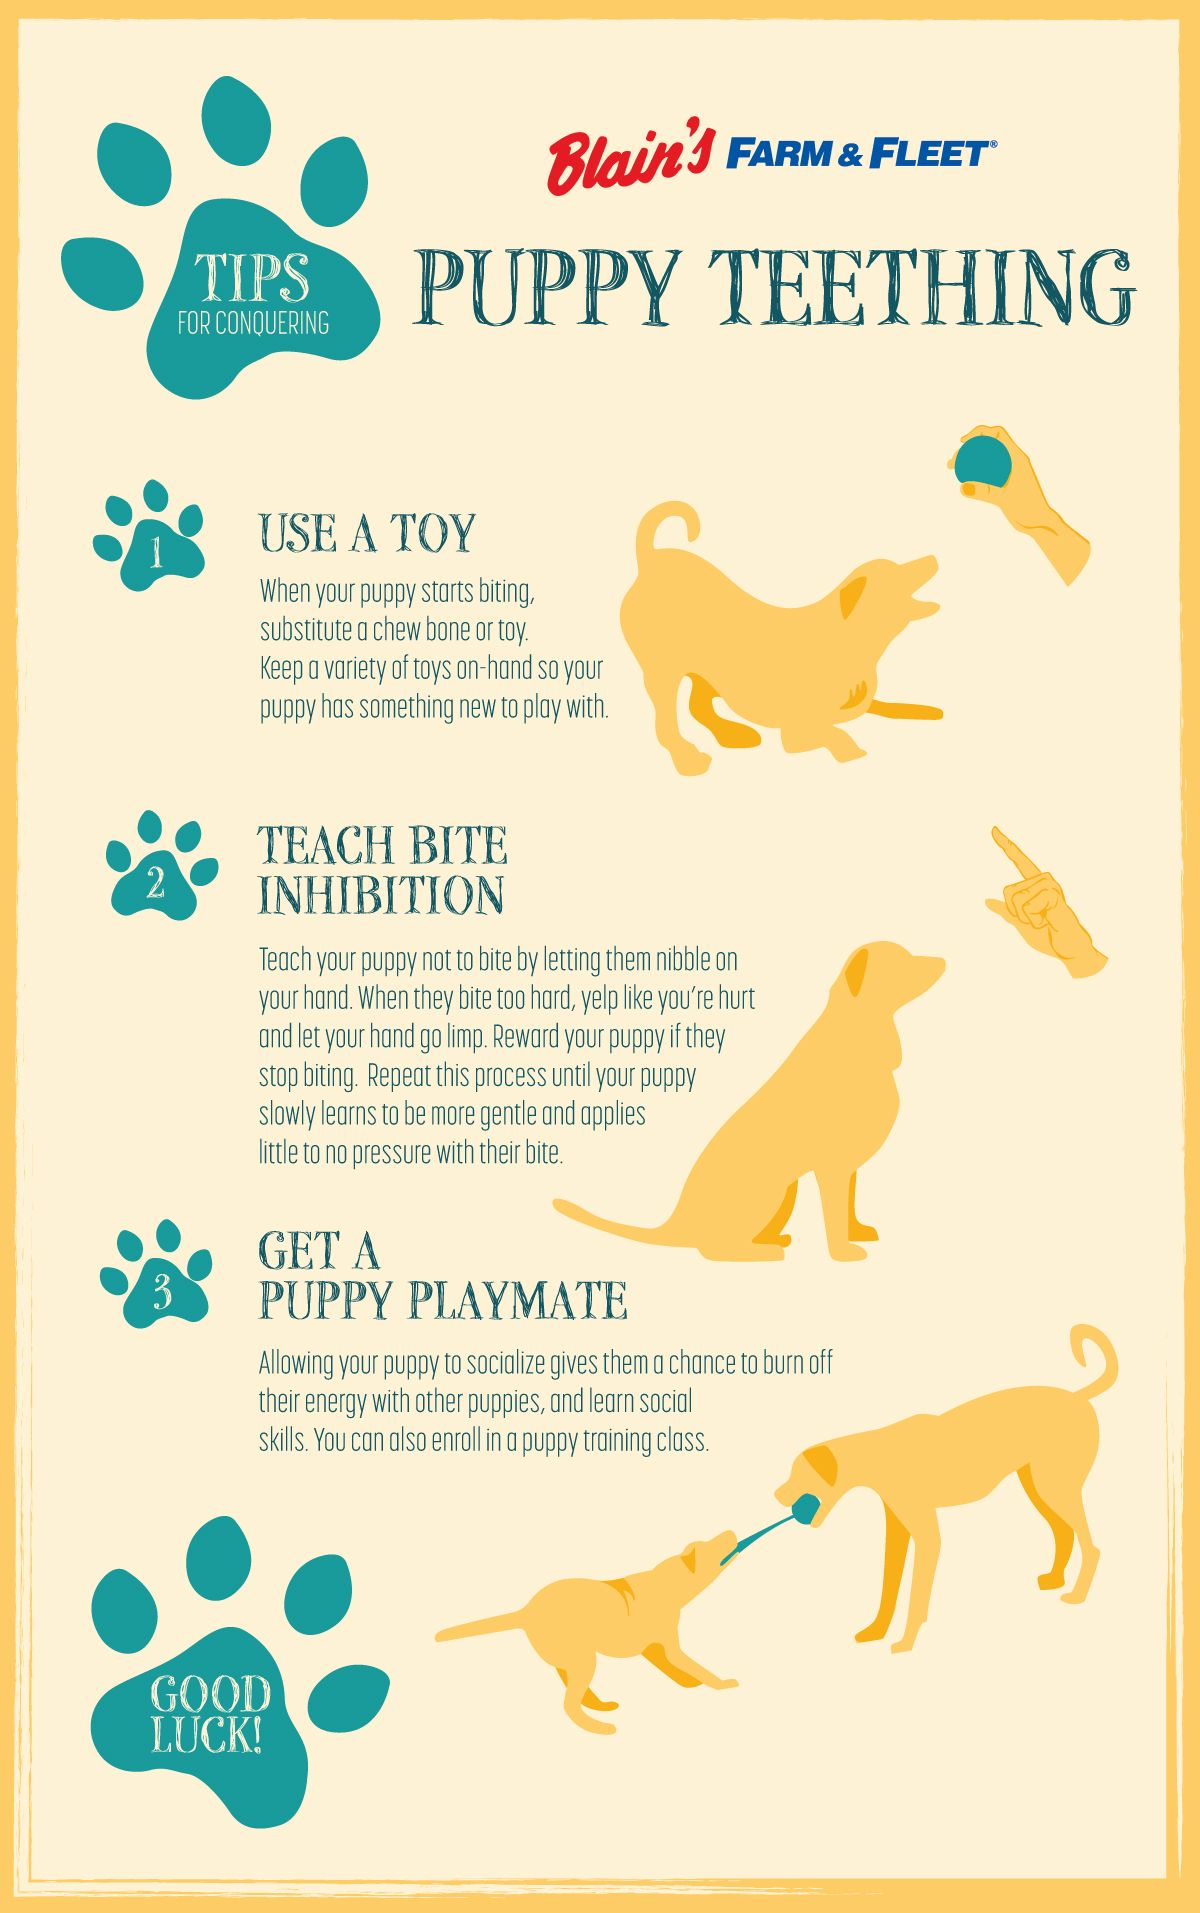 How To Deal With Puppy Teething Puppy Teething Puppy Training Tips Puppy Training Biting